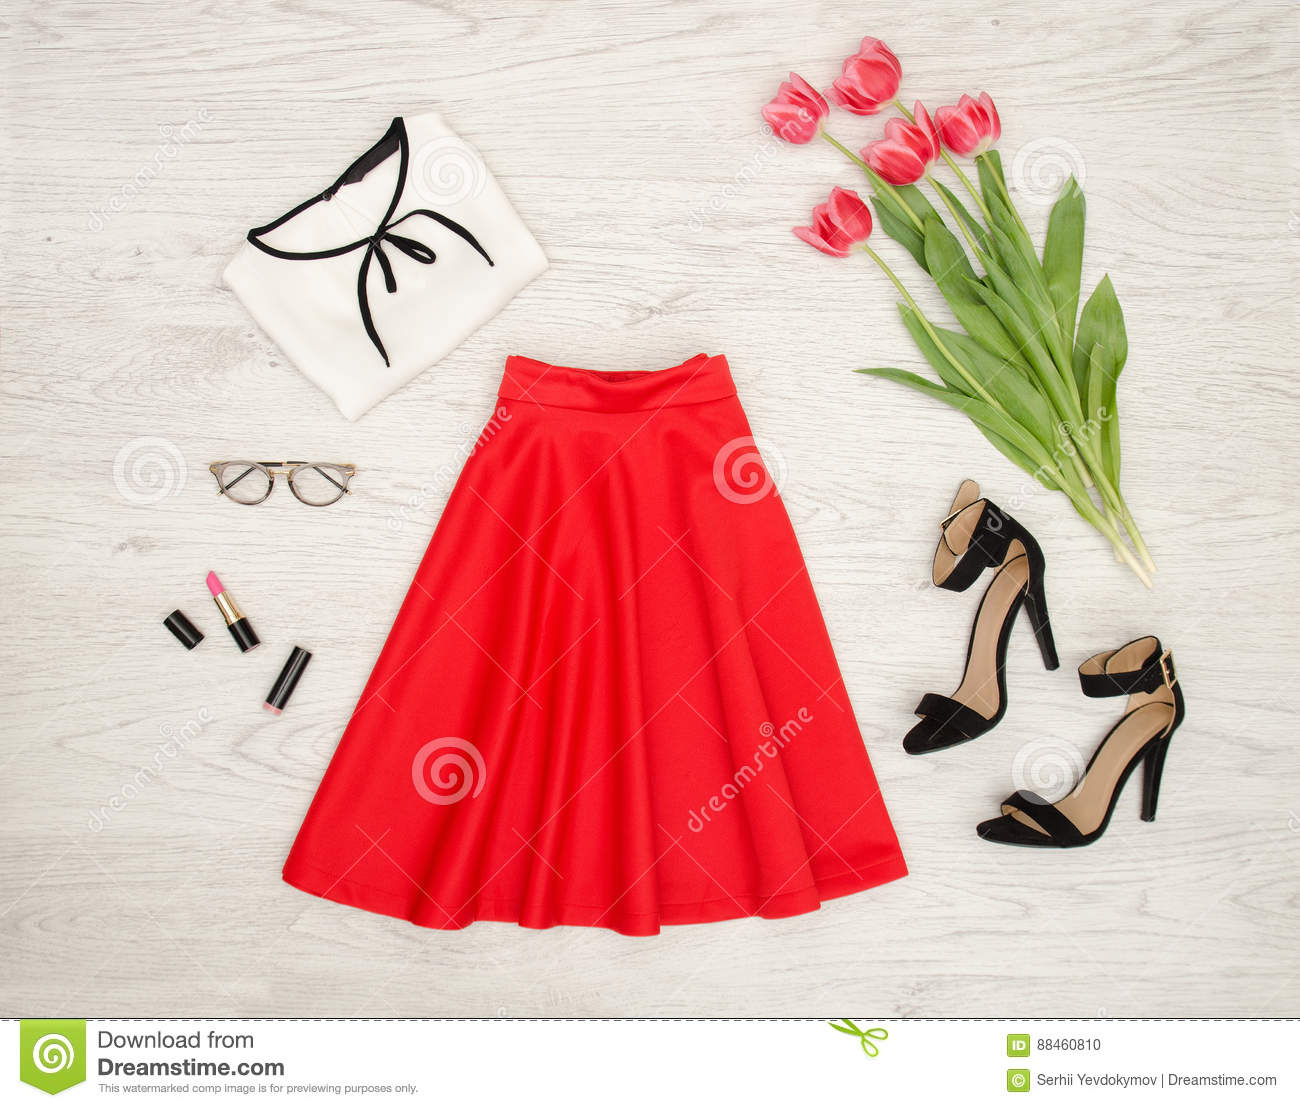 Fashion concept. Red skirt, blouse, sunglasses, lipstick, black shoes and pink tulips. Top view, light wood background